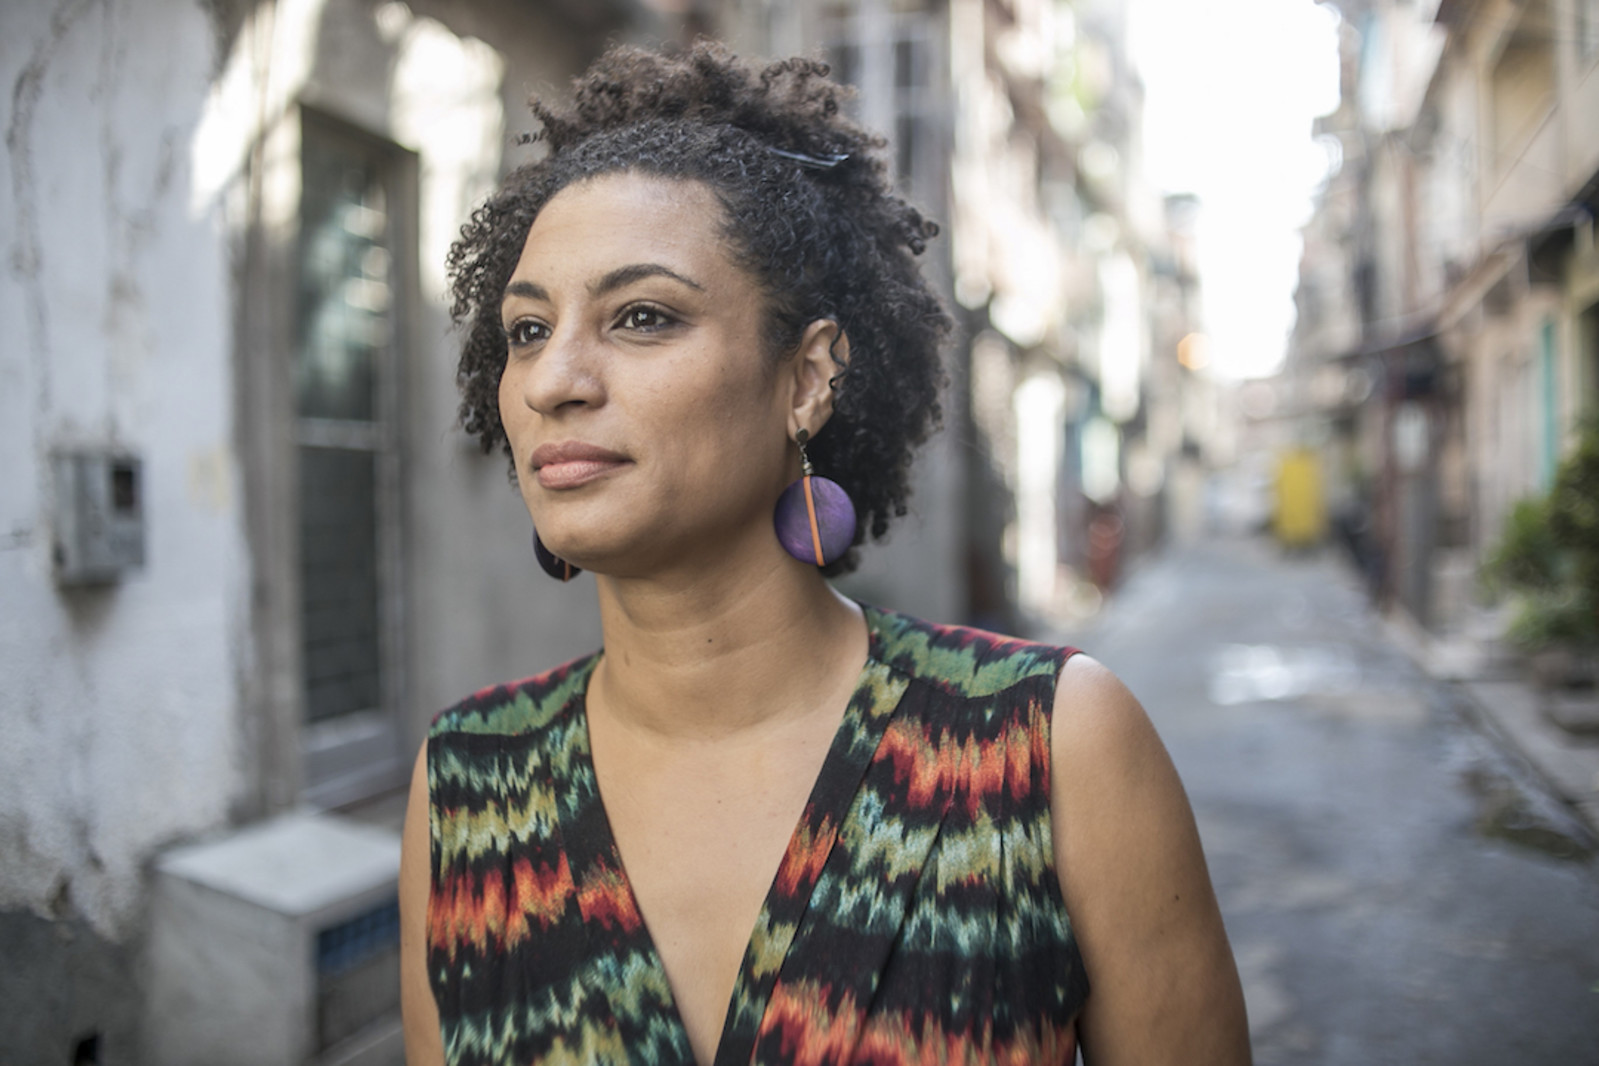 Brazil: Prosecute the killers of human rights defender Marielle Franco